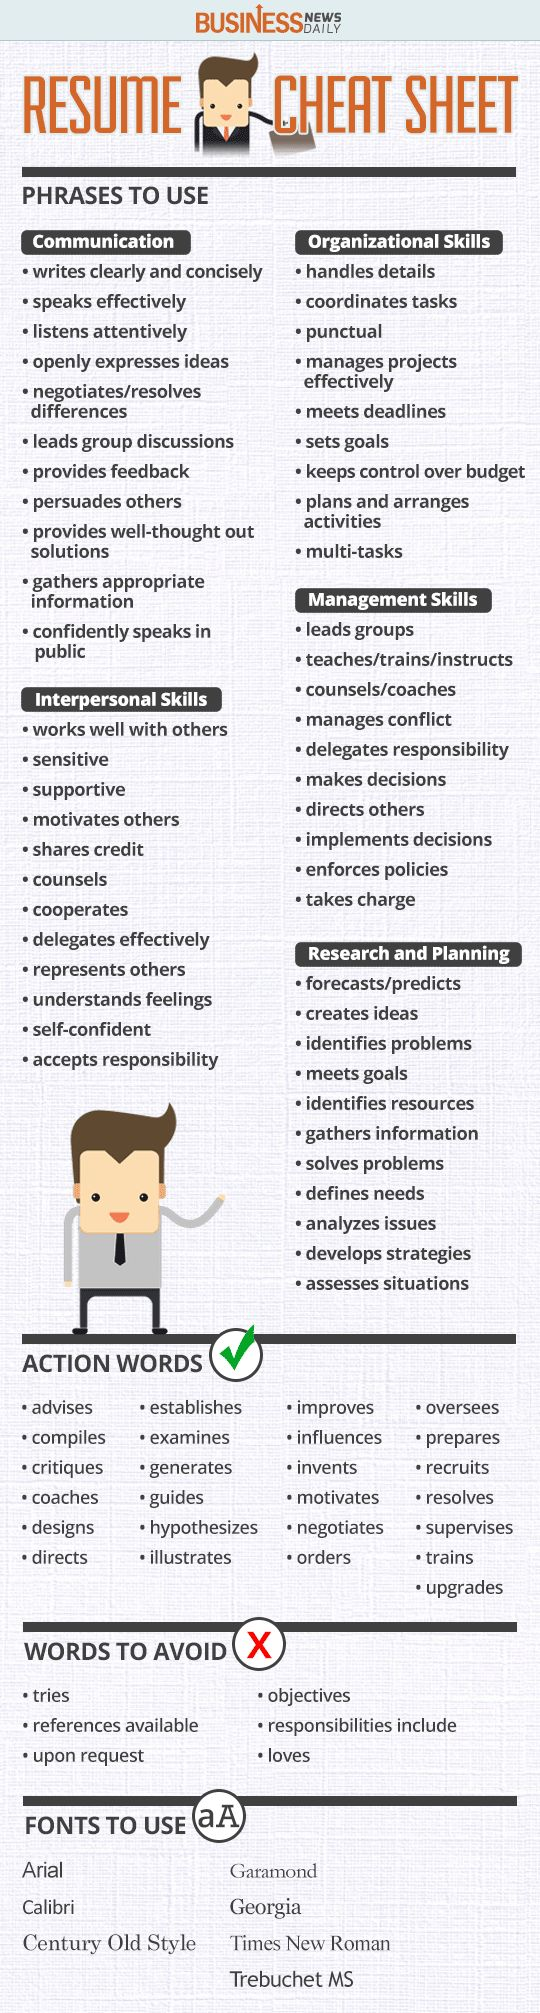 Opposenewapstandardsus  Picturesque  Ideas About Resume On Pinterest  Cv Format Resume Cv And  With Fair Resume Cheat Sheet Infographic Andrews Almost Done With A Complete Unit On Employment Which With Cool Education Section Resume Also Resume Writers Nyc In Addition Technical Project Manager Resume And Brand Manager Resume As Well As Business Analyst Resumes Additionally Technical Skills On Resume From Pinterestcom With Opposenewapstandardsus  Fair  Ideas About Resume On Pinterest  Cv Format Resume Cv And  With Cool Resume Cheat Sheet Infographic Andrews Almost Done With A Complete Unit On Employment Which And Picturesque Education Section Resume Also Resume Writers Nyc In Addition Technical Project Manager Resume From Pinterestcom